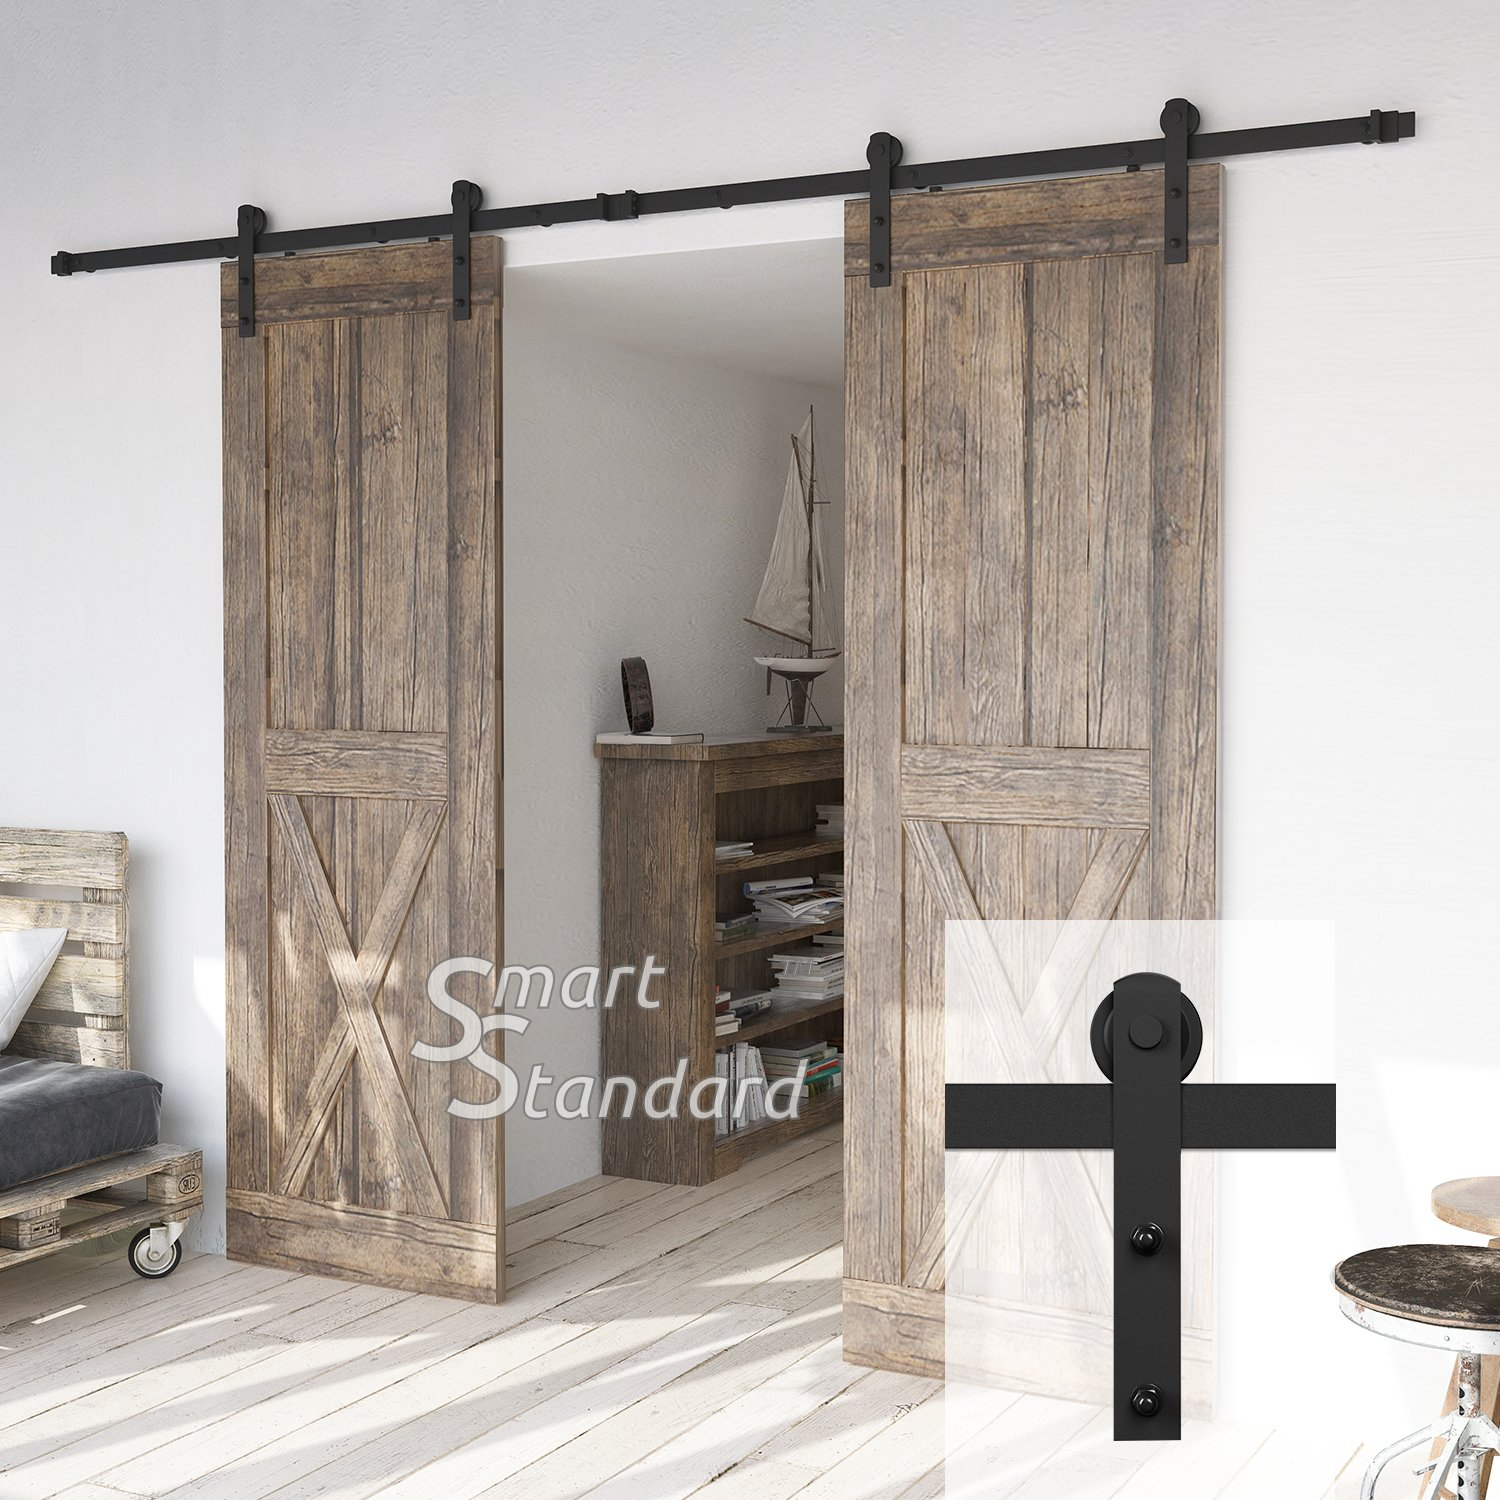 10ft Heavy Duty Double Door Sliding Barn Door Hardware Kit - Super Smoothly and Quietly - Simple and Easy to Install - Includes Step-by-Step Installation Instruction - Fit 30'' Wide Door Panel(I Shape)